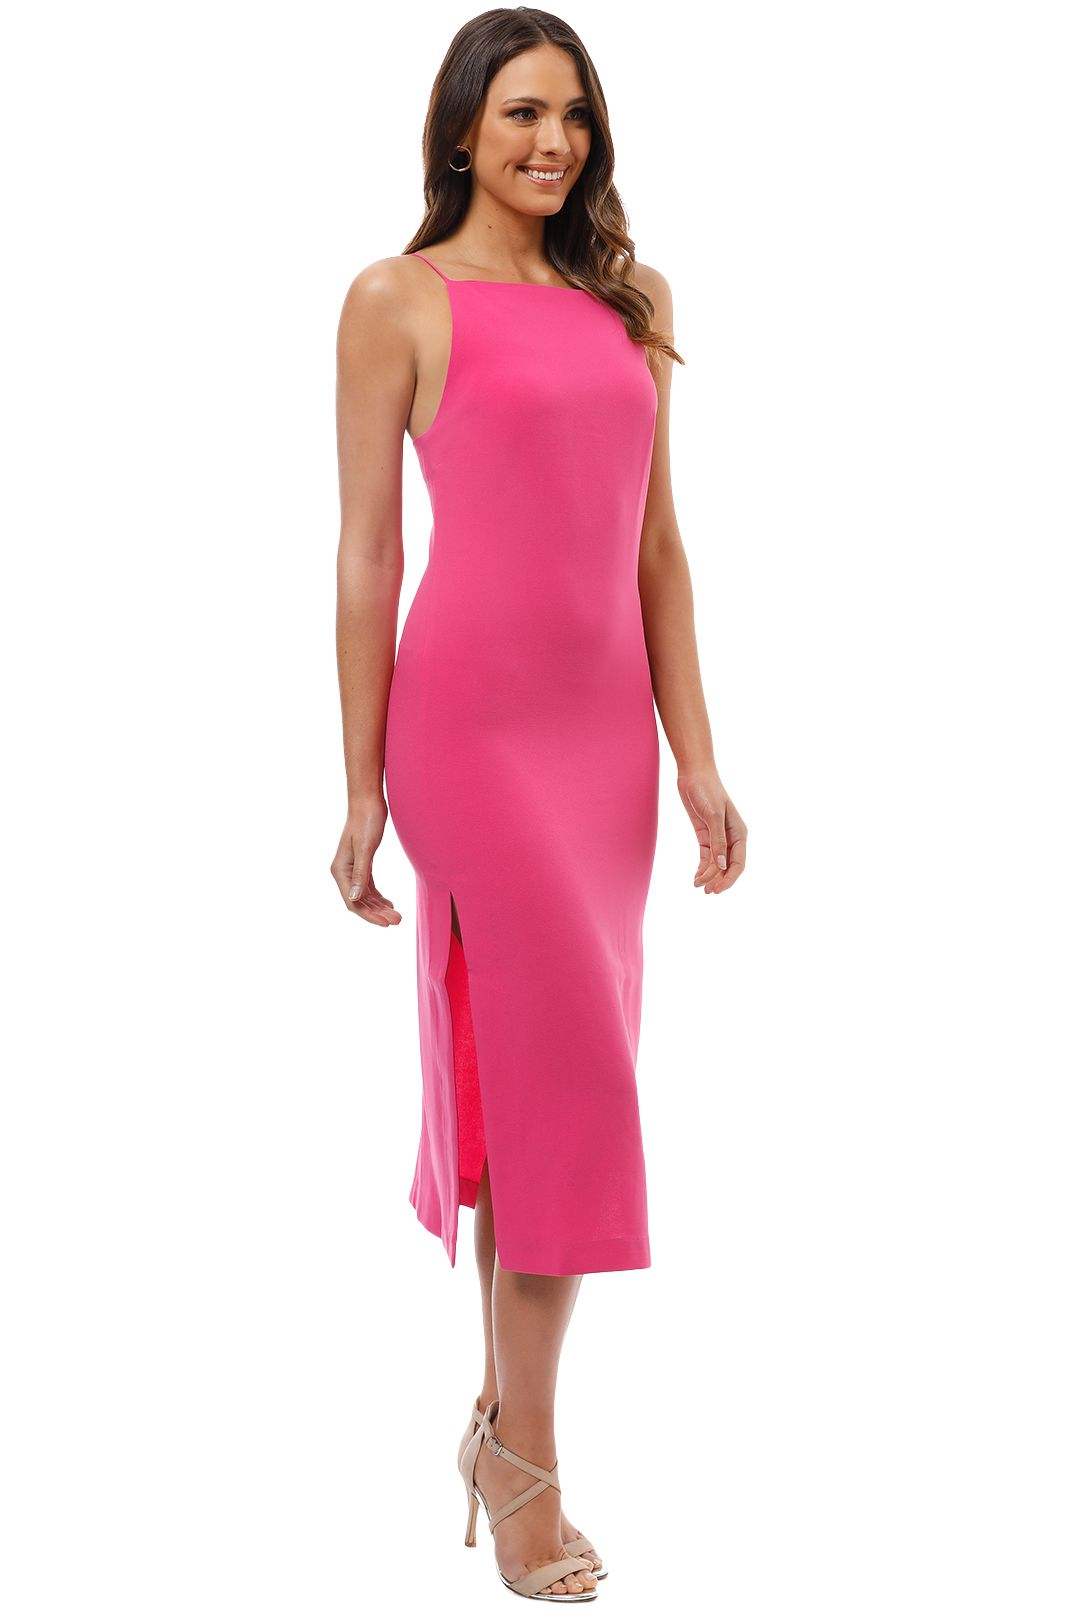 Elliatt - Fossil Dress - Fuschia - Side